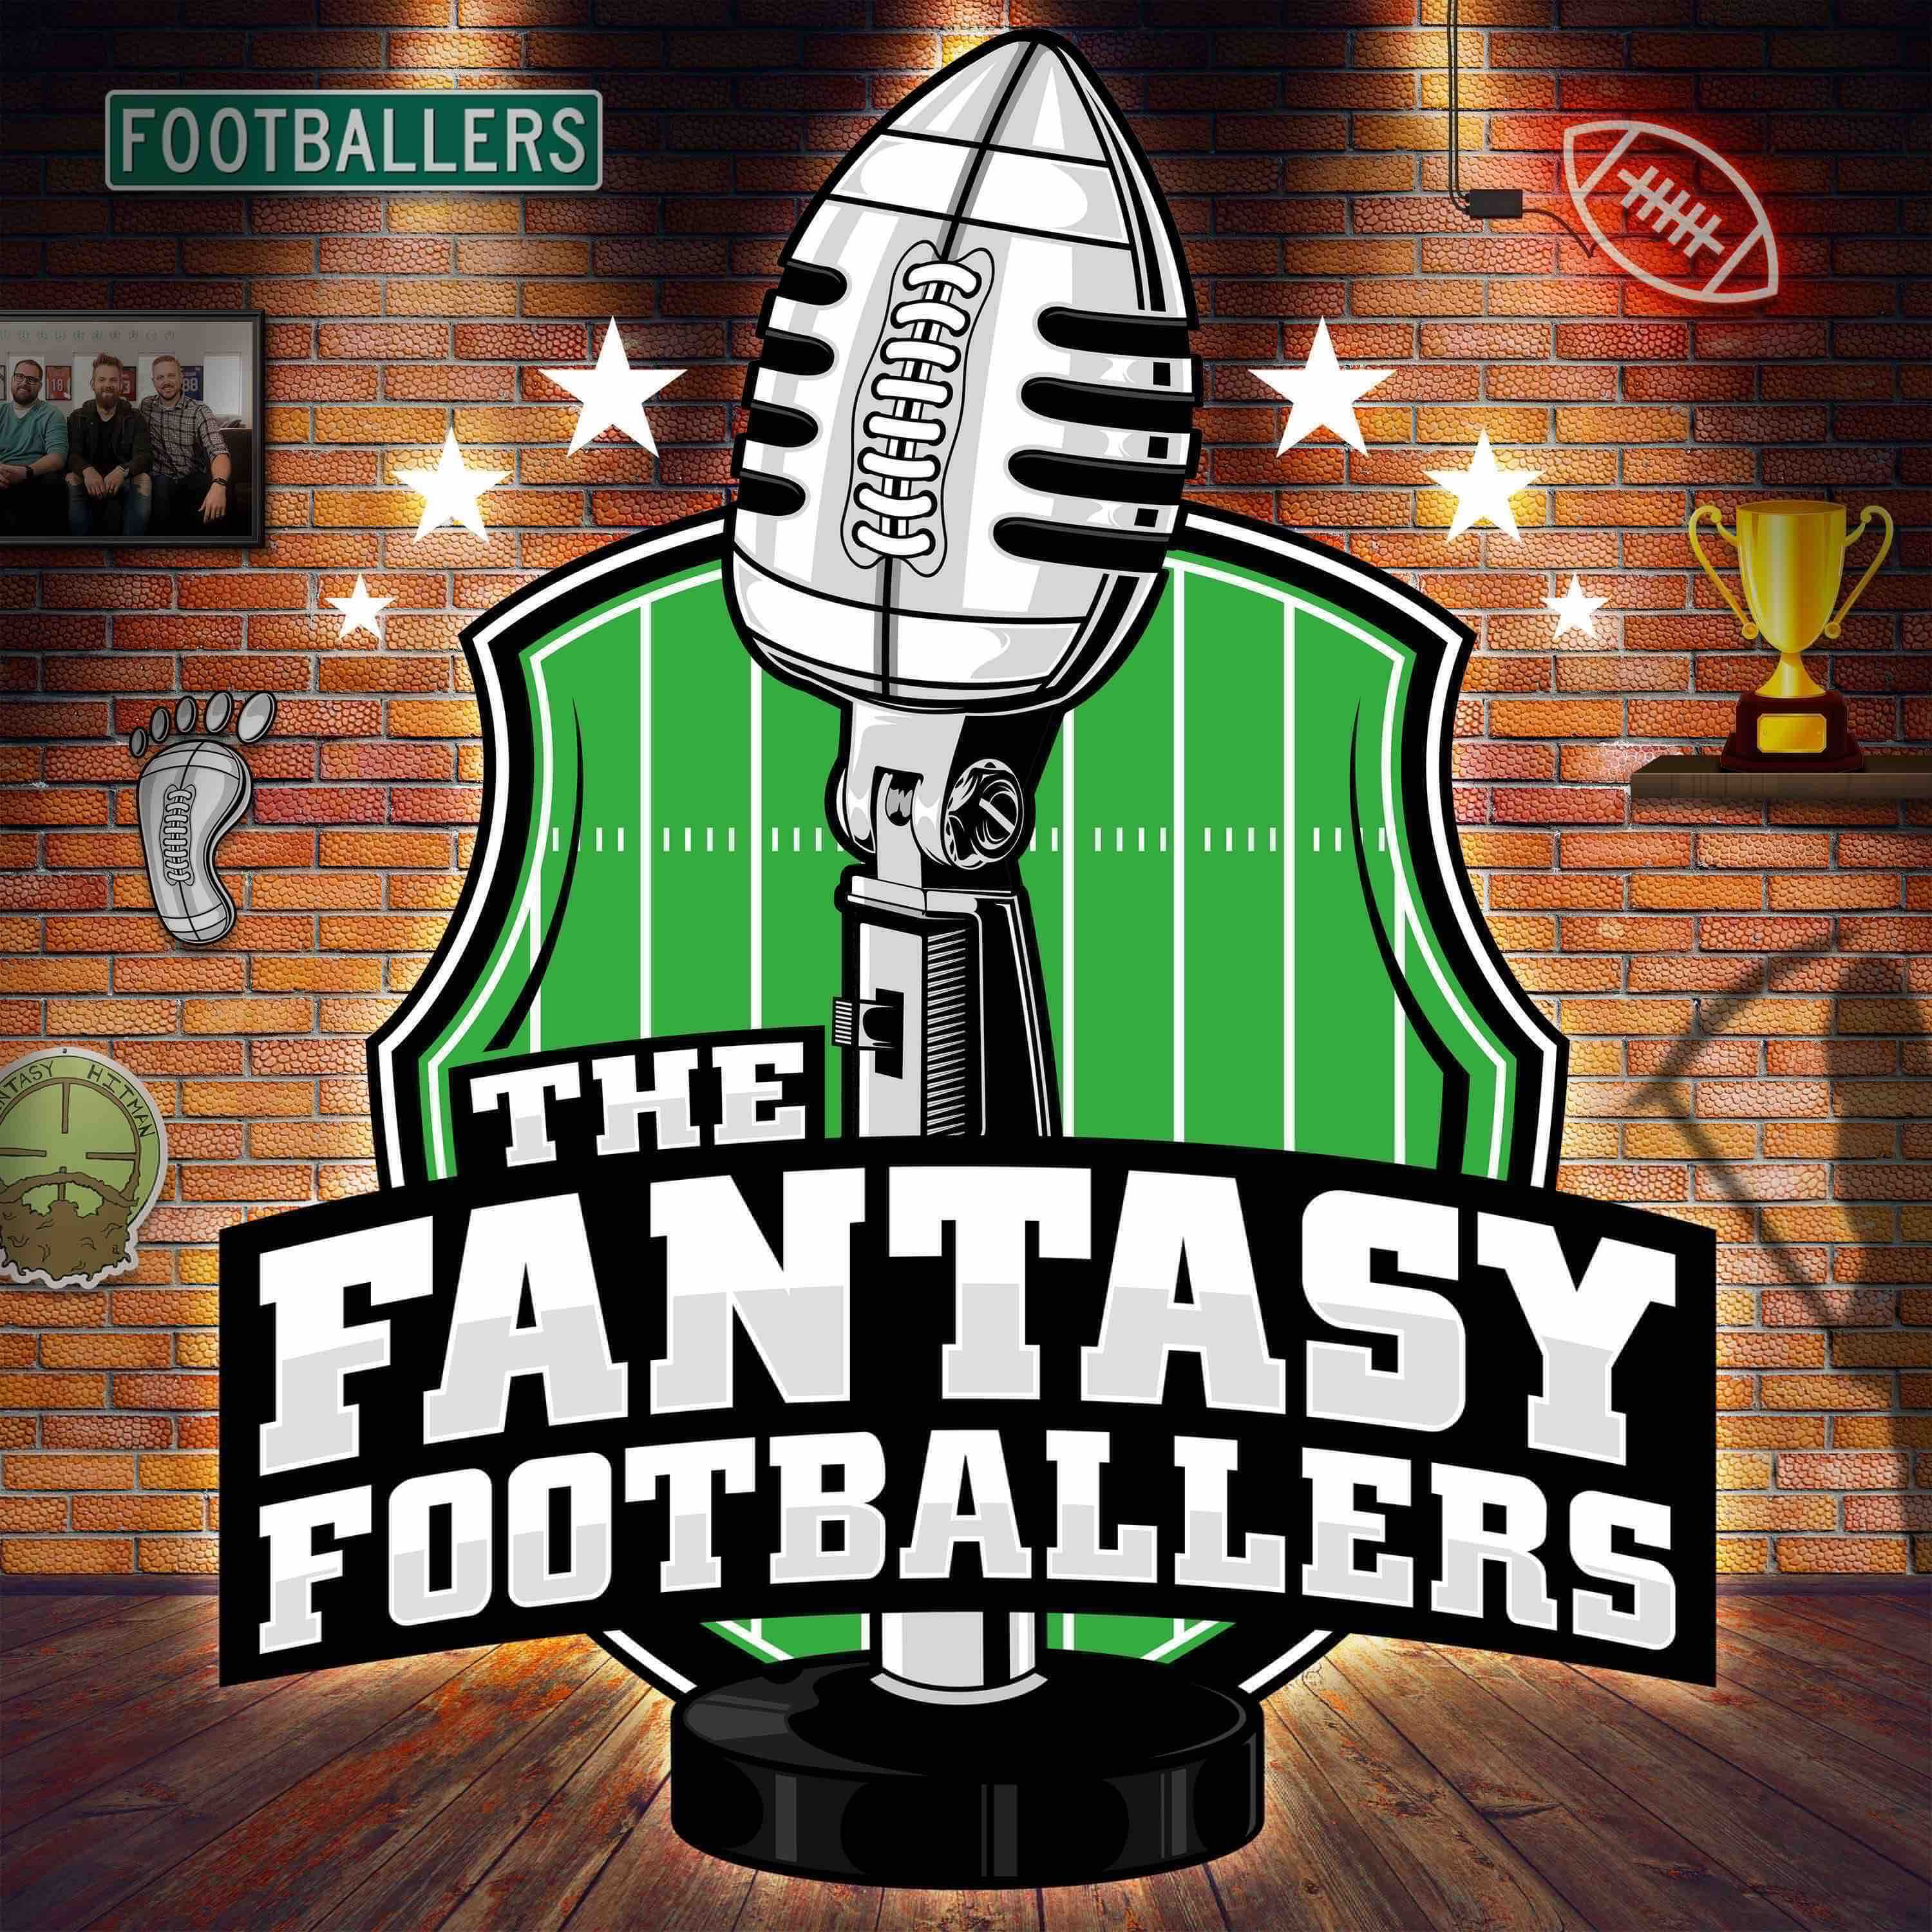 The TRUTH About Fantasy RBs in 2020, Part 2 - Fantasy Football Podcast for 1/28